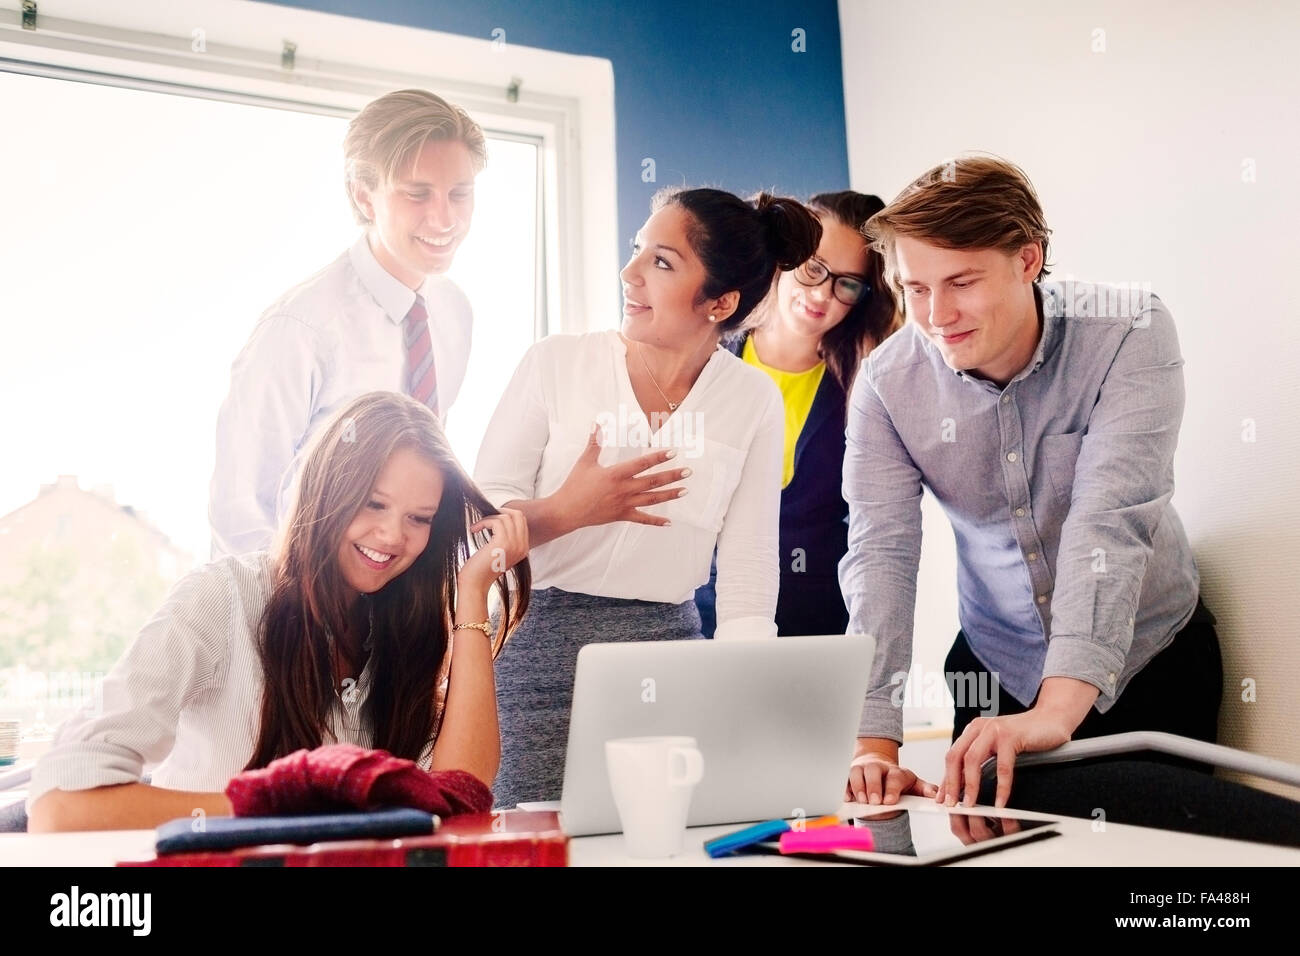 Business people at conference room - Stock Image